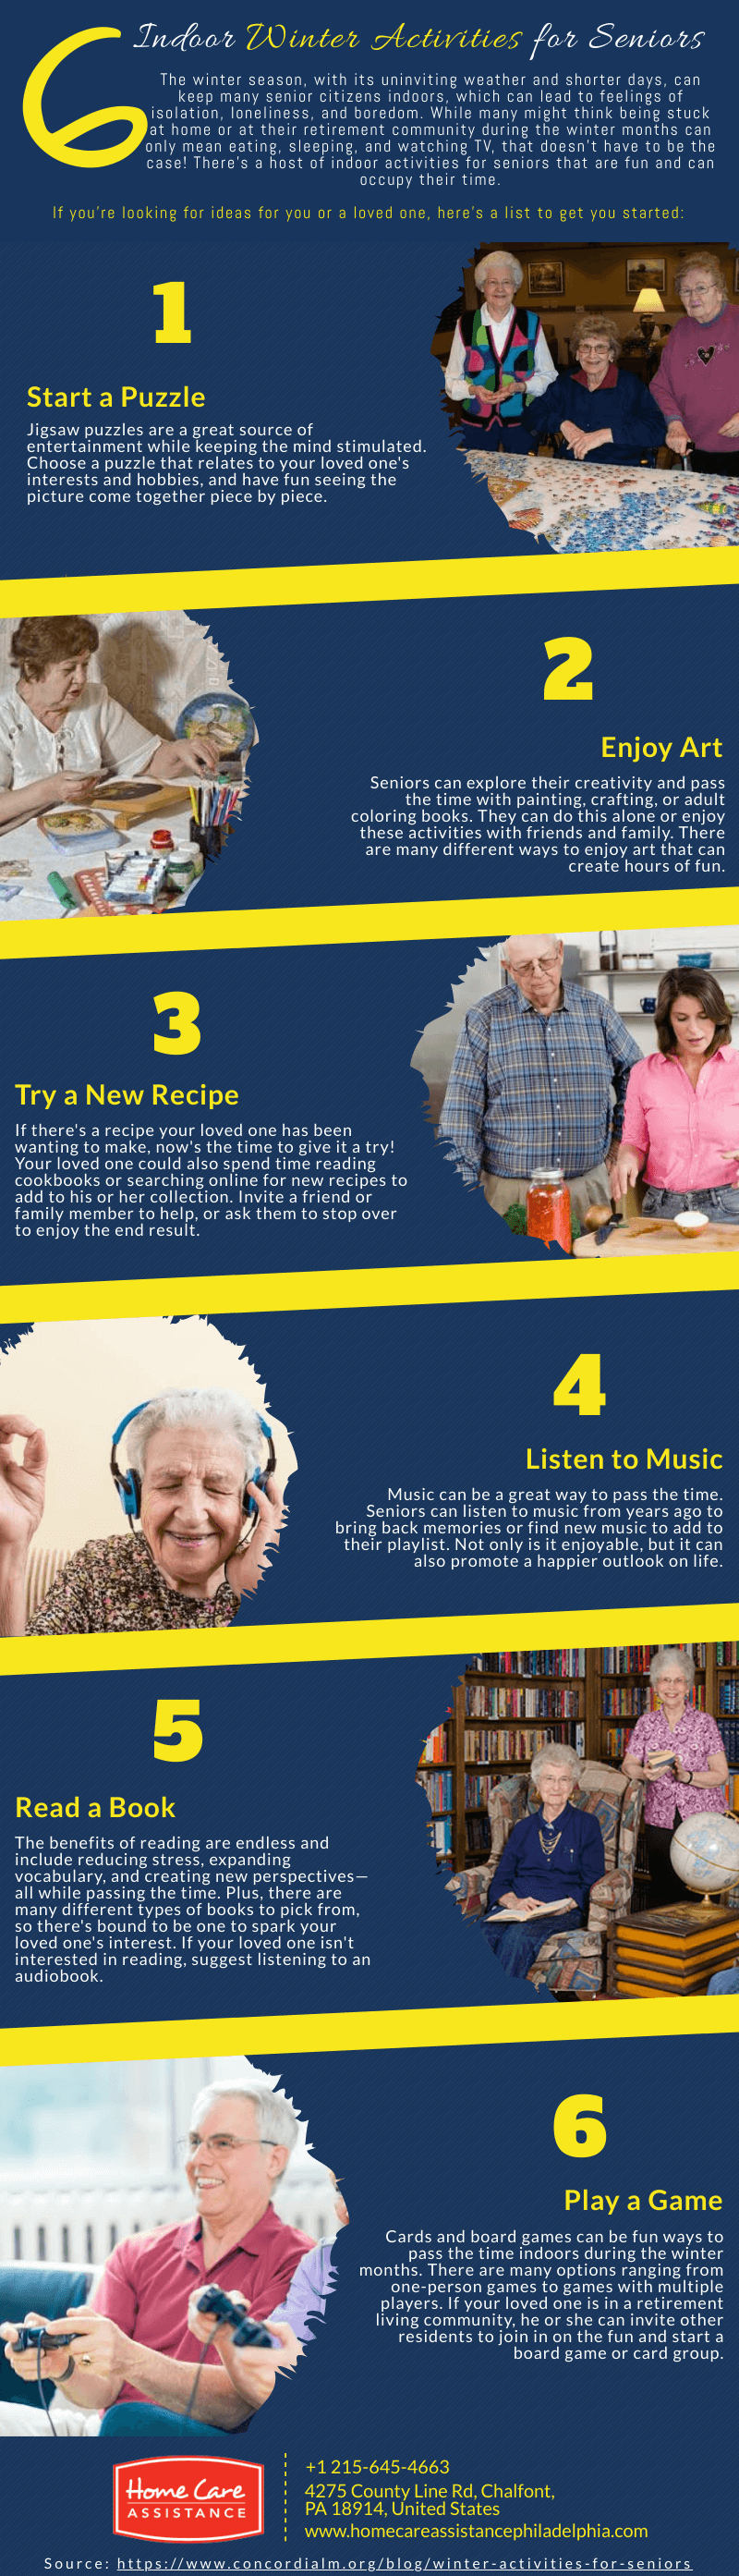 6 Indoor Winter Activities for Seniors [Infographic]